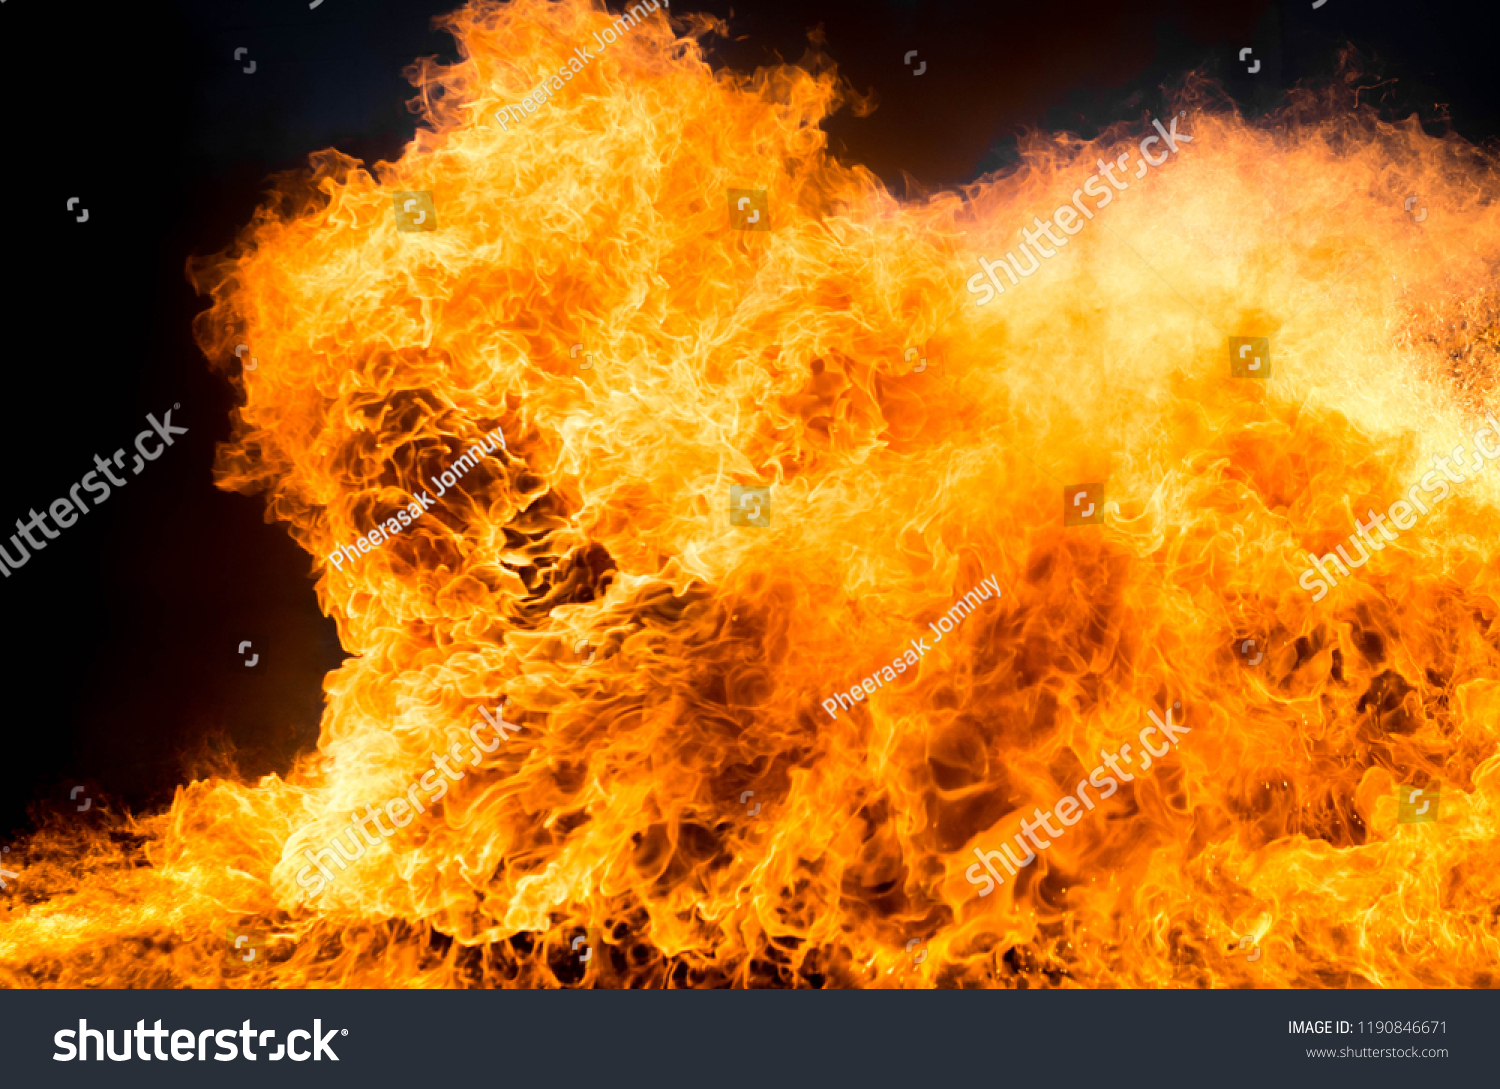 Texture Fire Background Fire Flames Using Backgrounds Textures Stock Image 1190846671